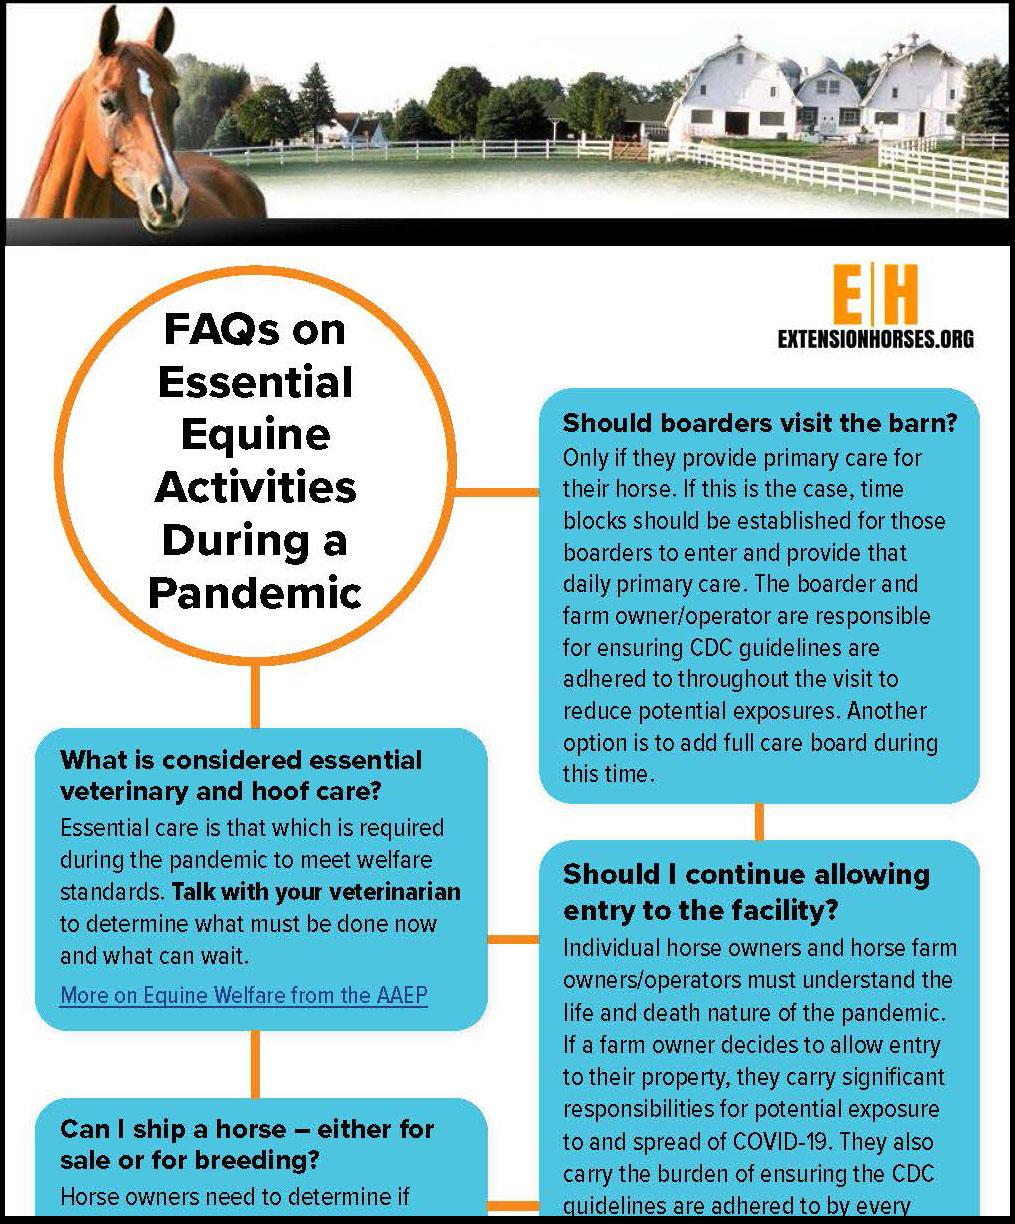 FAQs on essential equine care during a pandemic